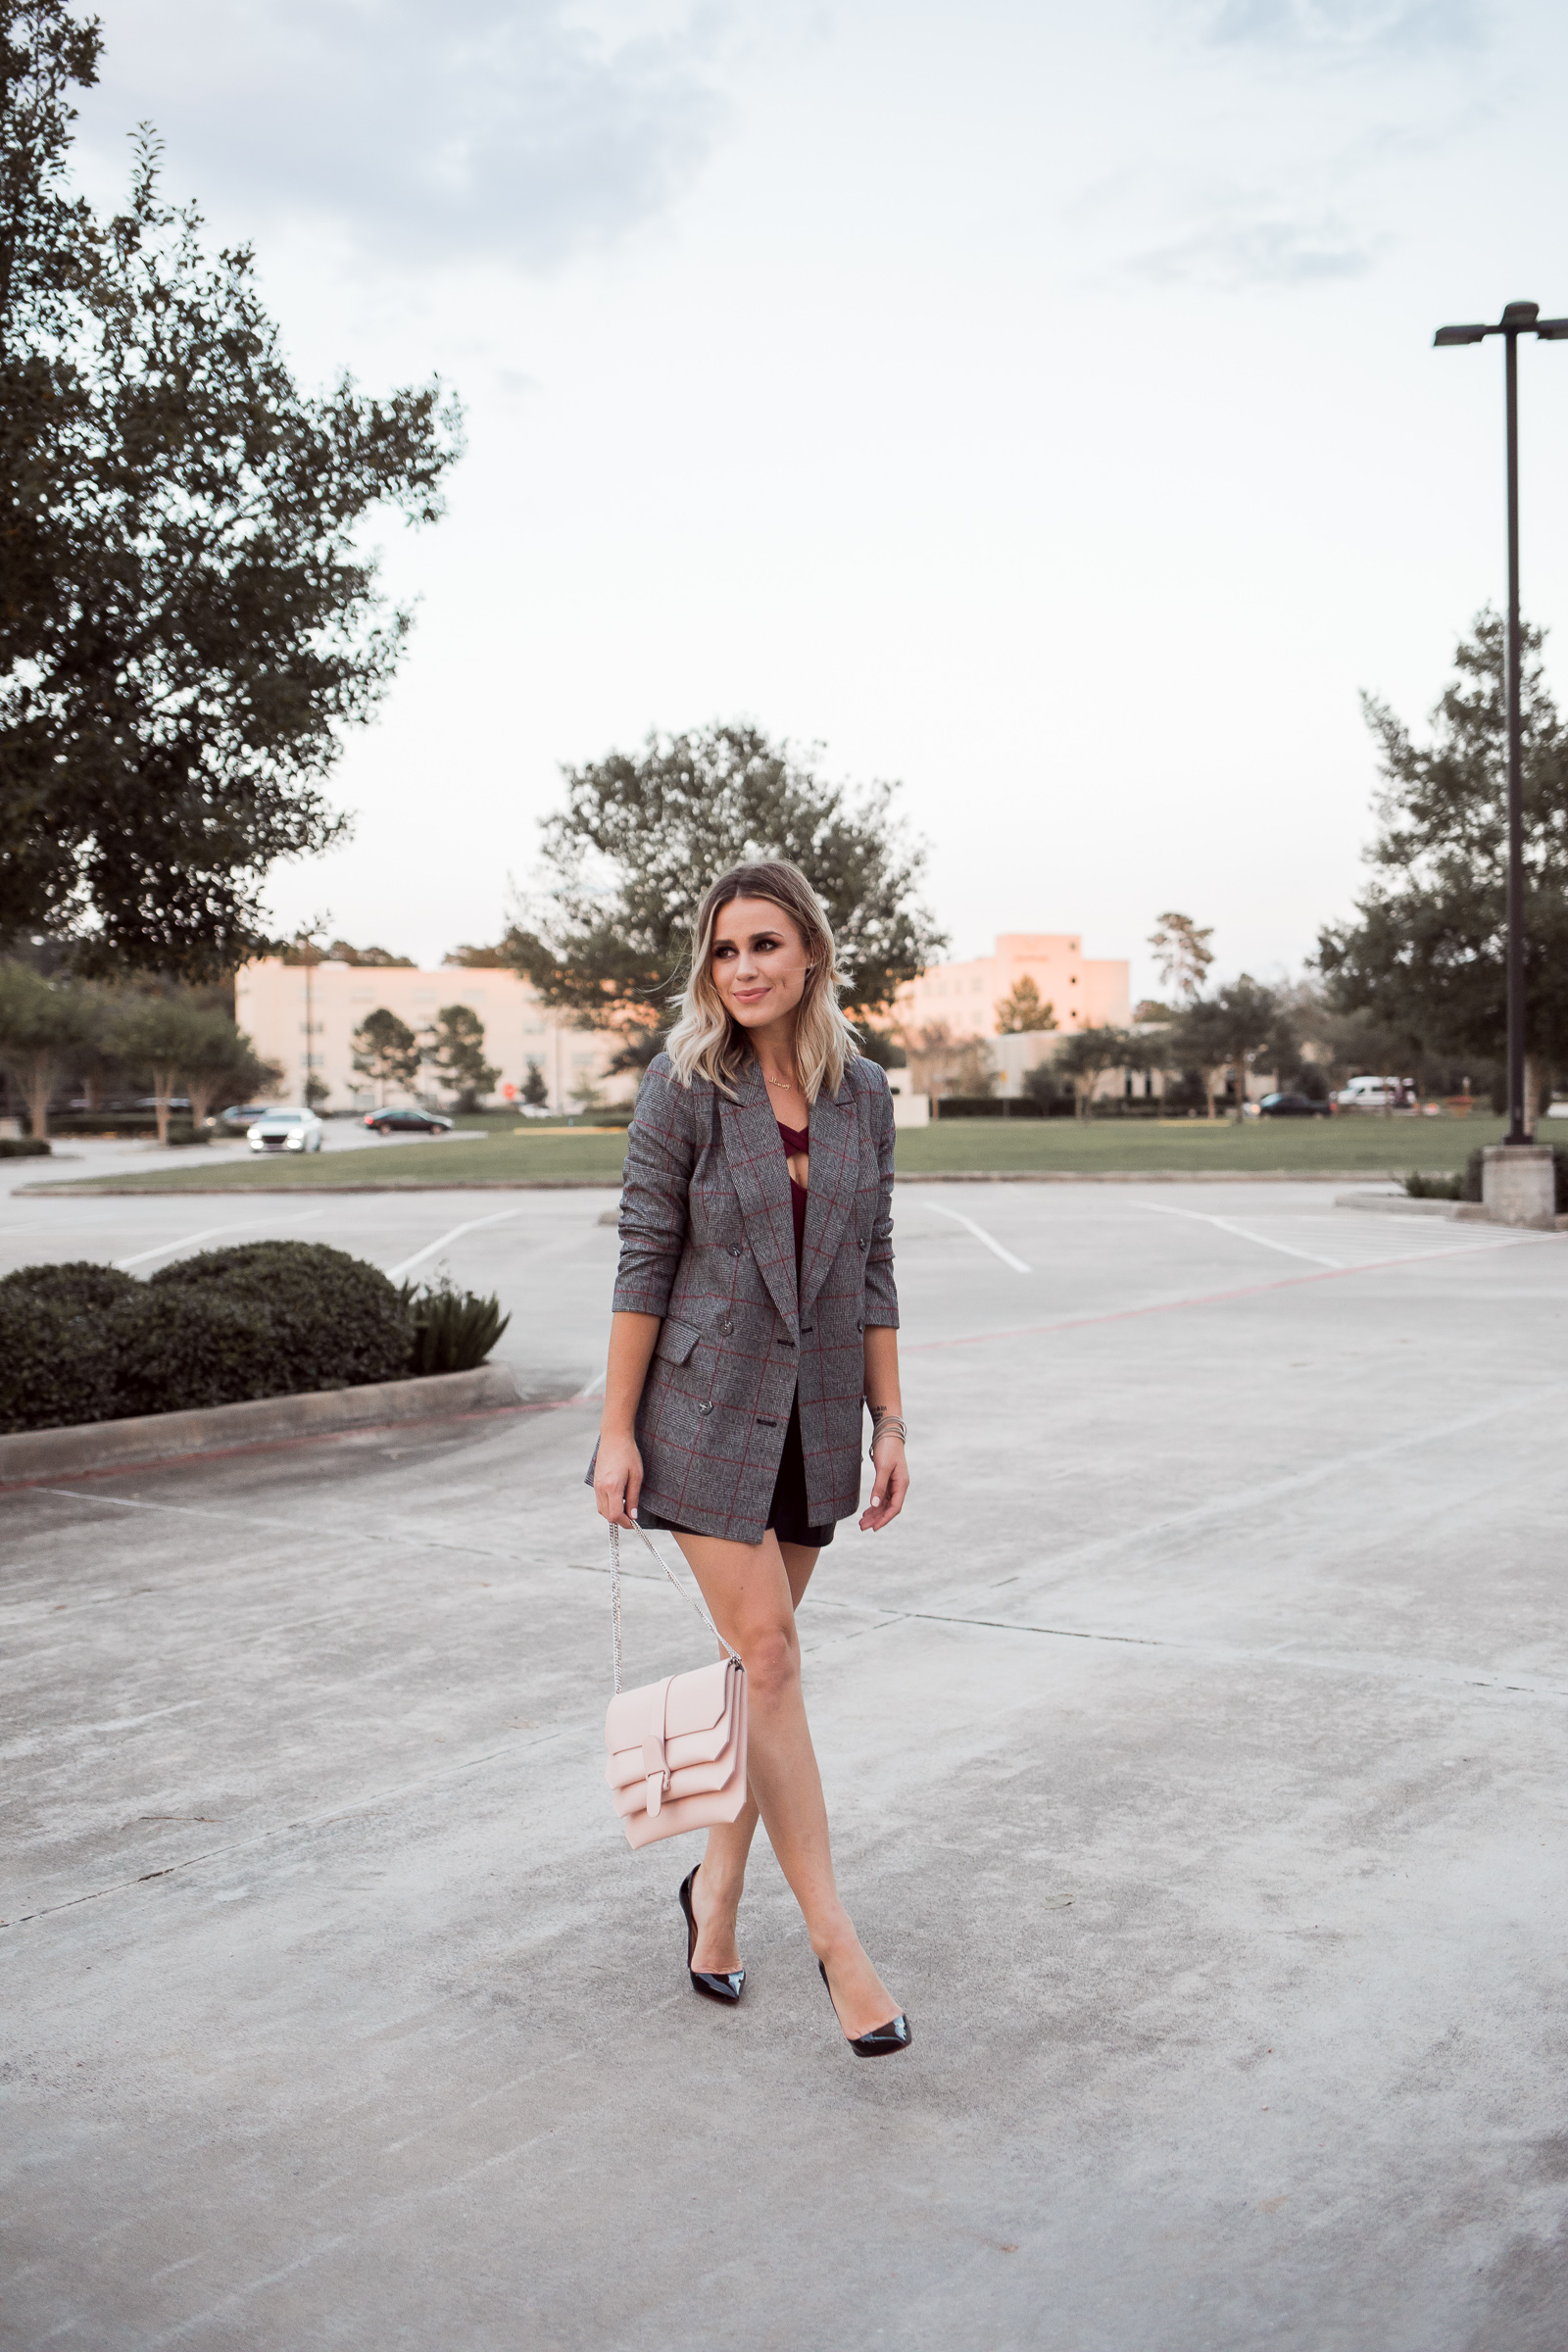 Houston Fashion blogger Uptown with Elly Brown shares how she wears a Plaid Blazer and a list of her must read books for the girl boss.